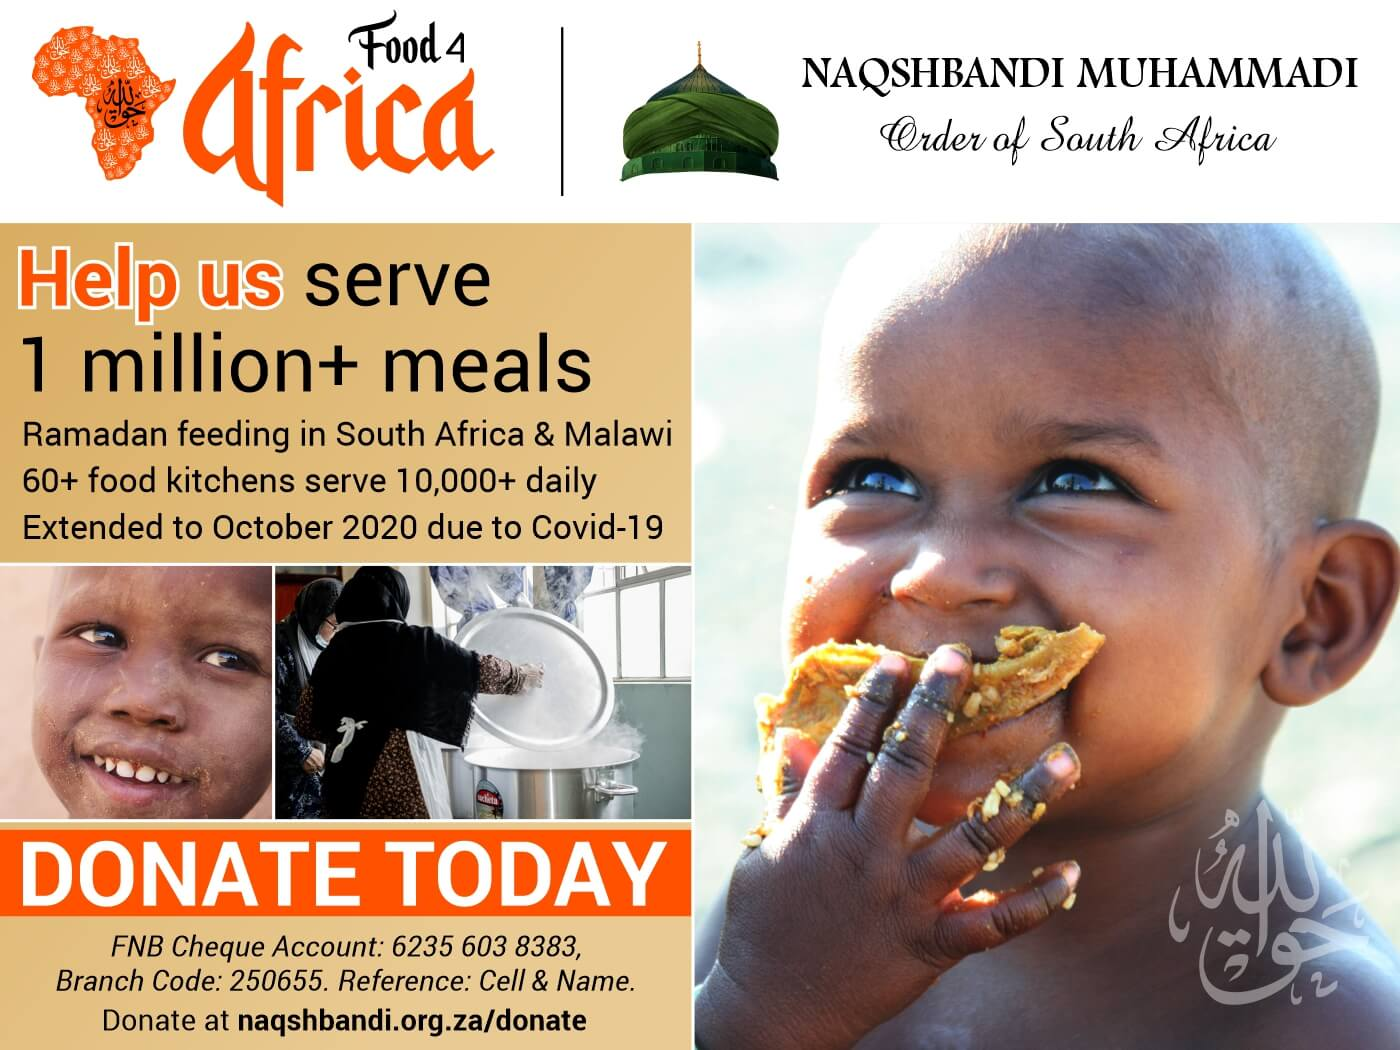 Food-4-Africa-poster-kids